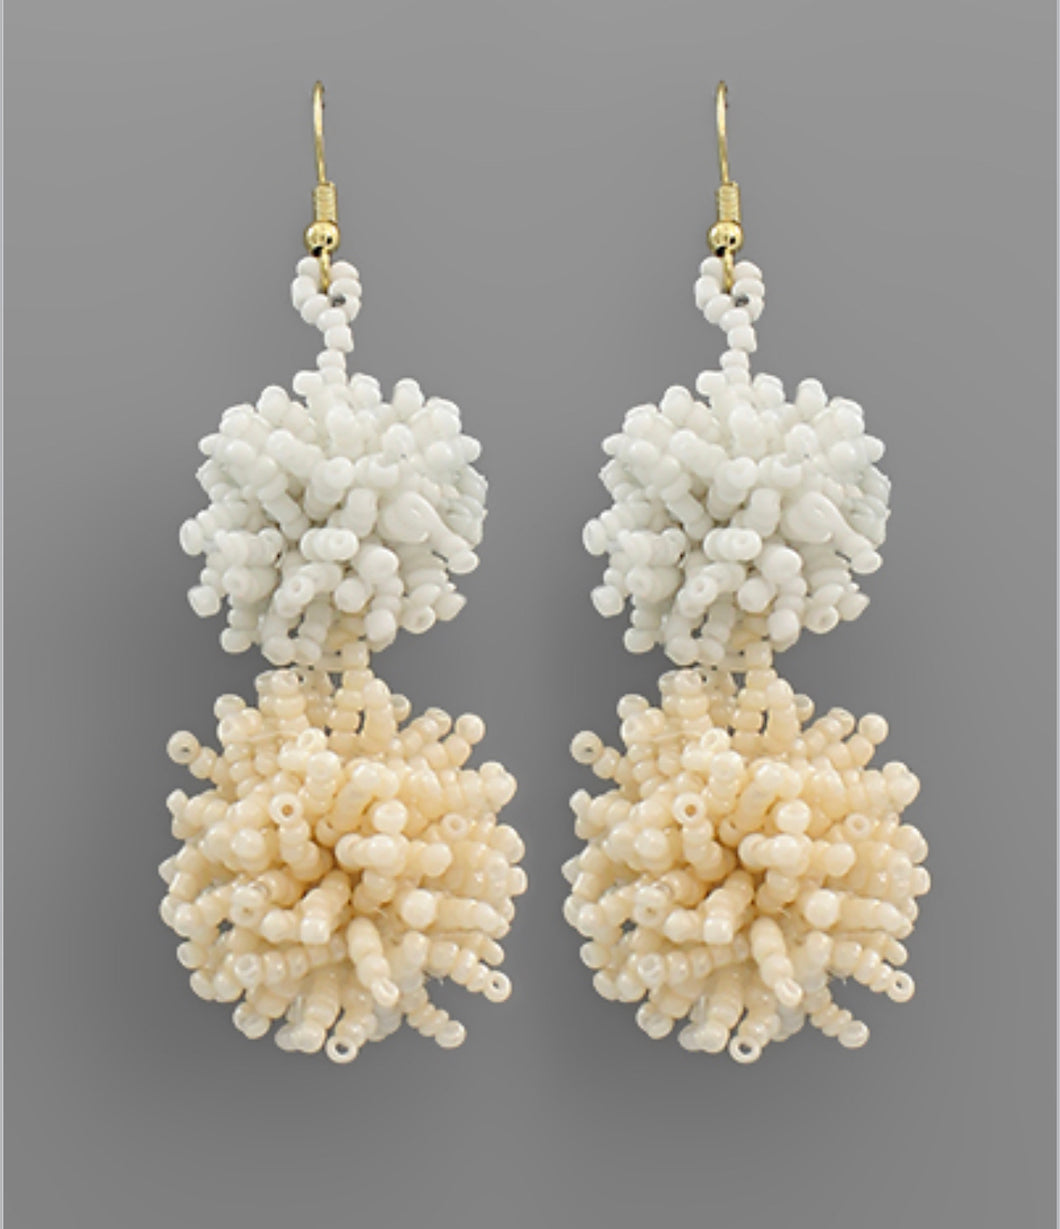 Twotone Bead Pompom Earrings